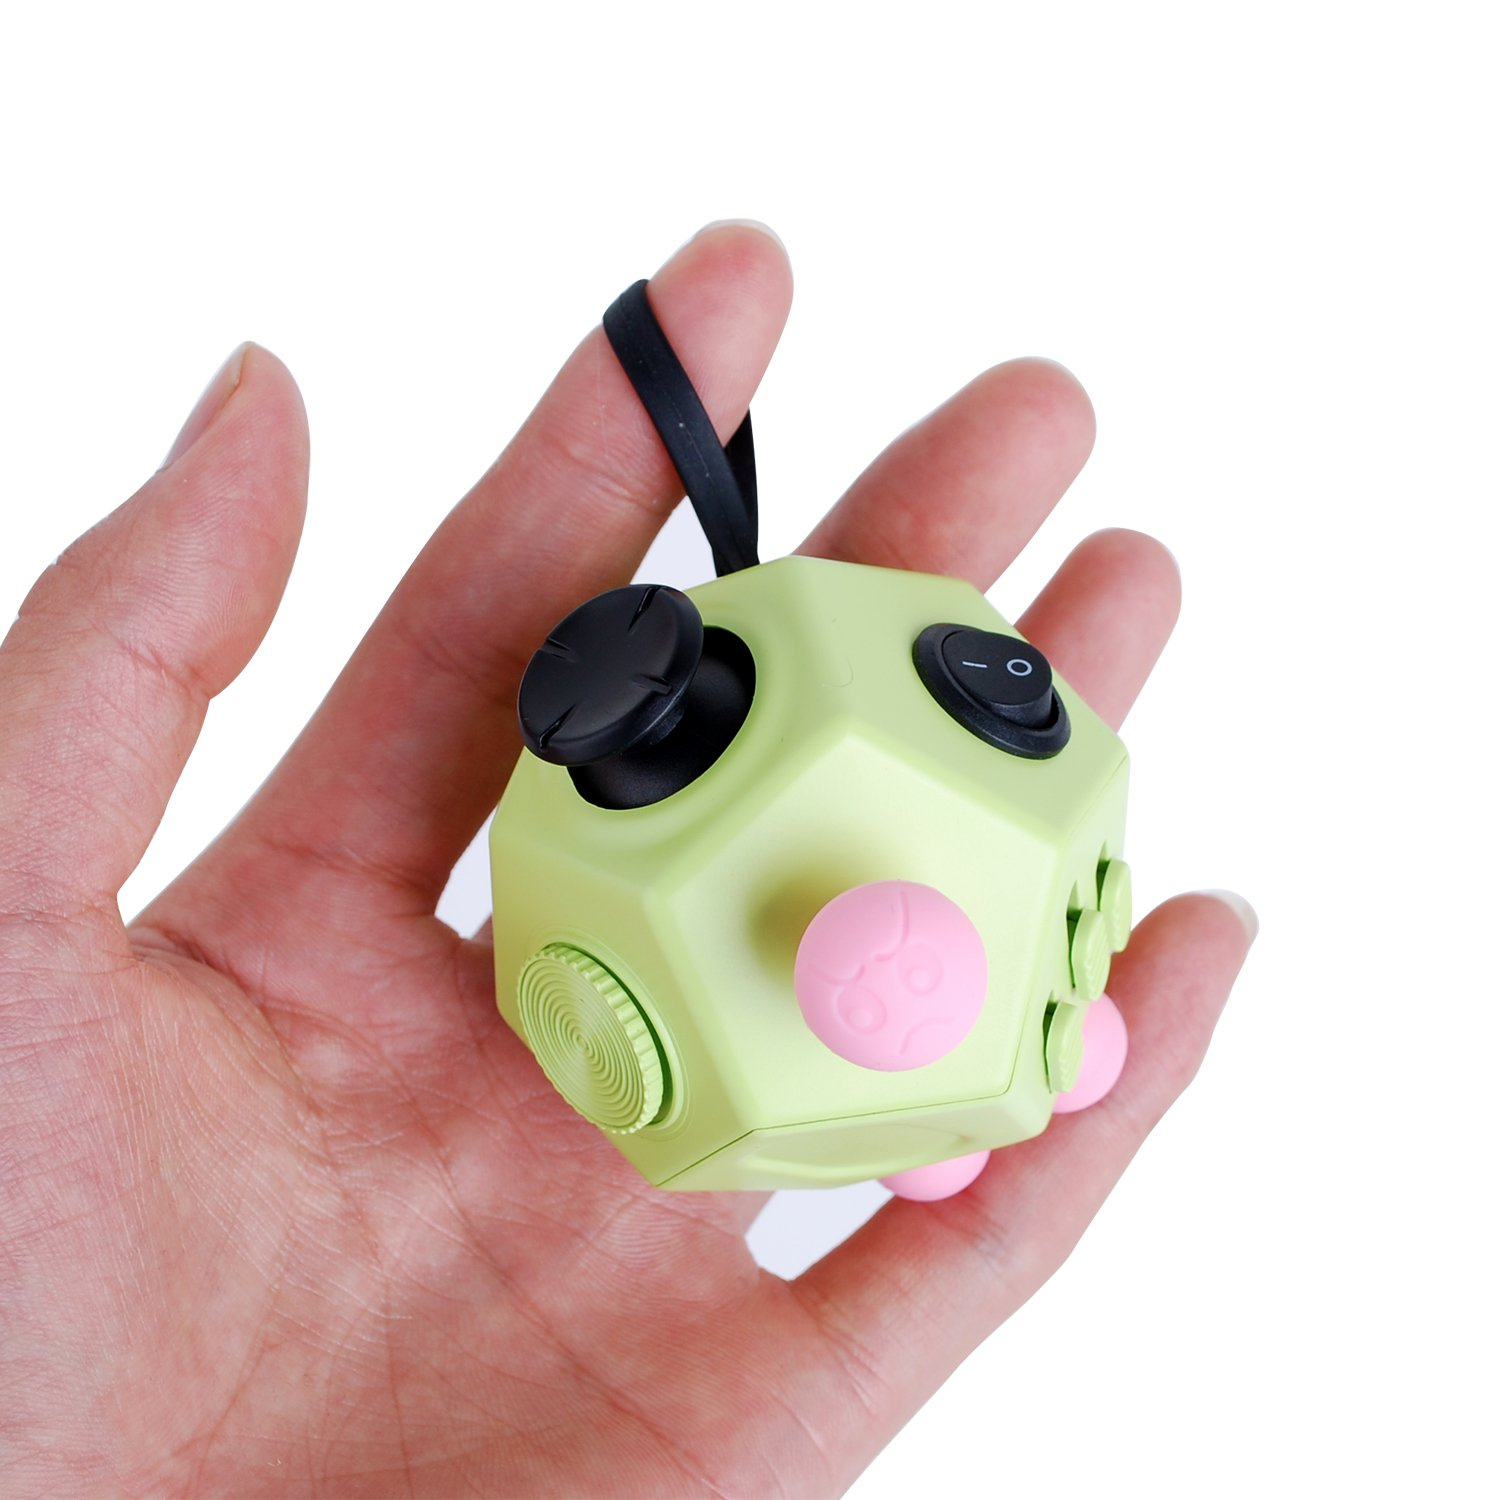 Fidget Cube Toys, Relieves Stress and Increases Focus for Adults and Children with ADHD ADD OCD Autism - 12 Sides Fidget Dice (Green) by BSL (Image #6)